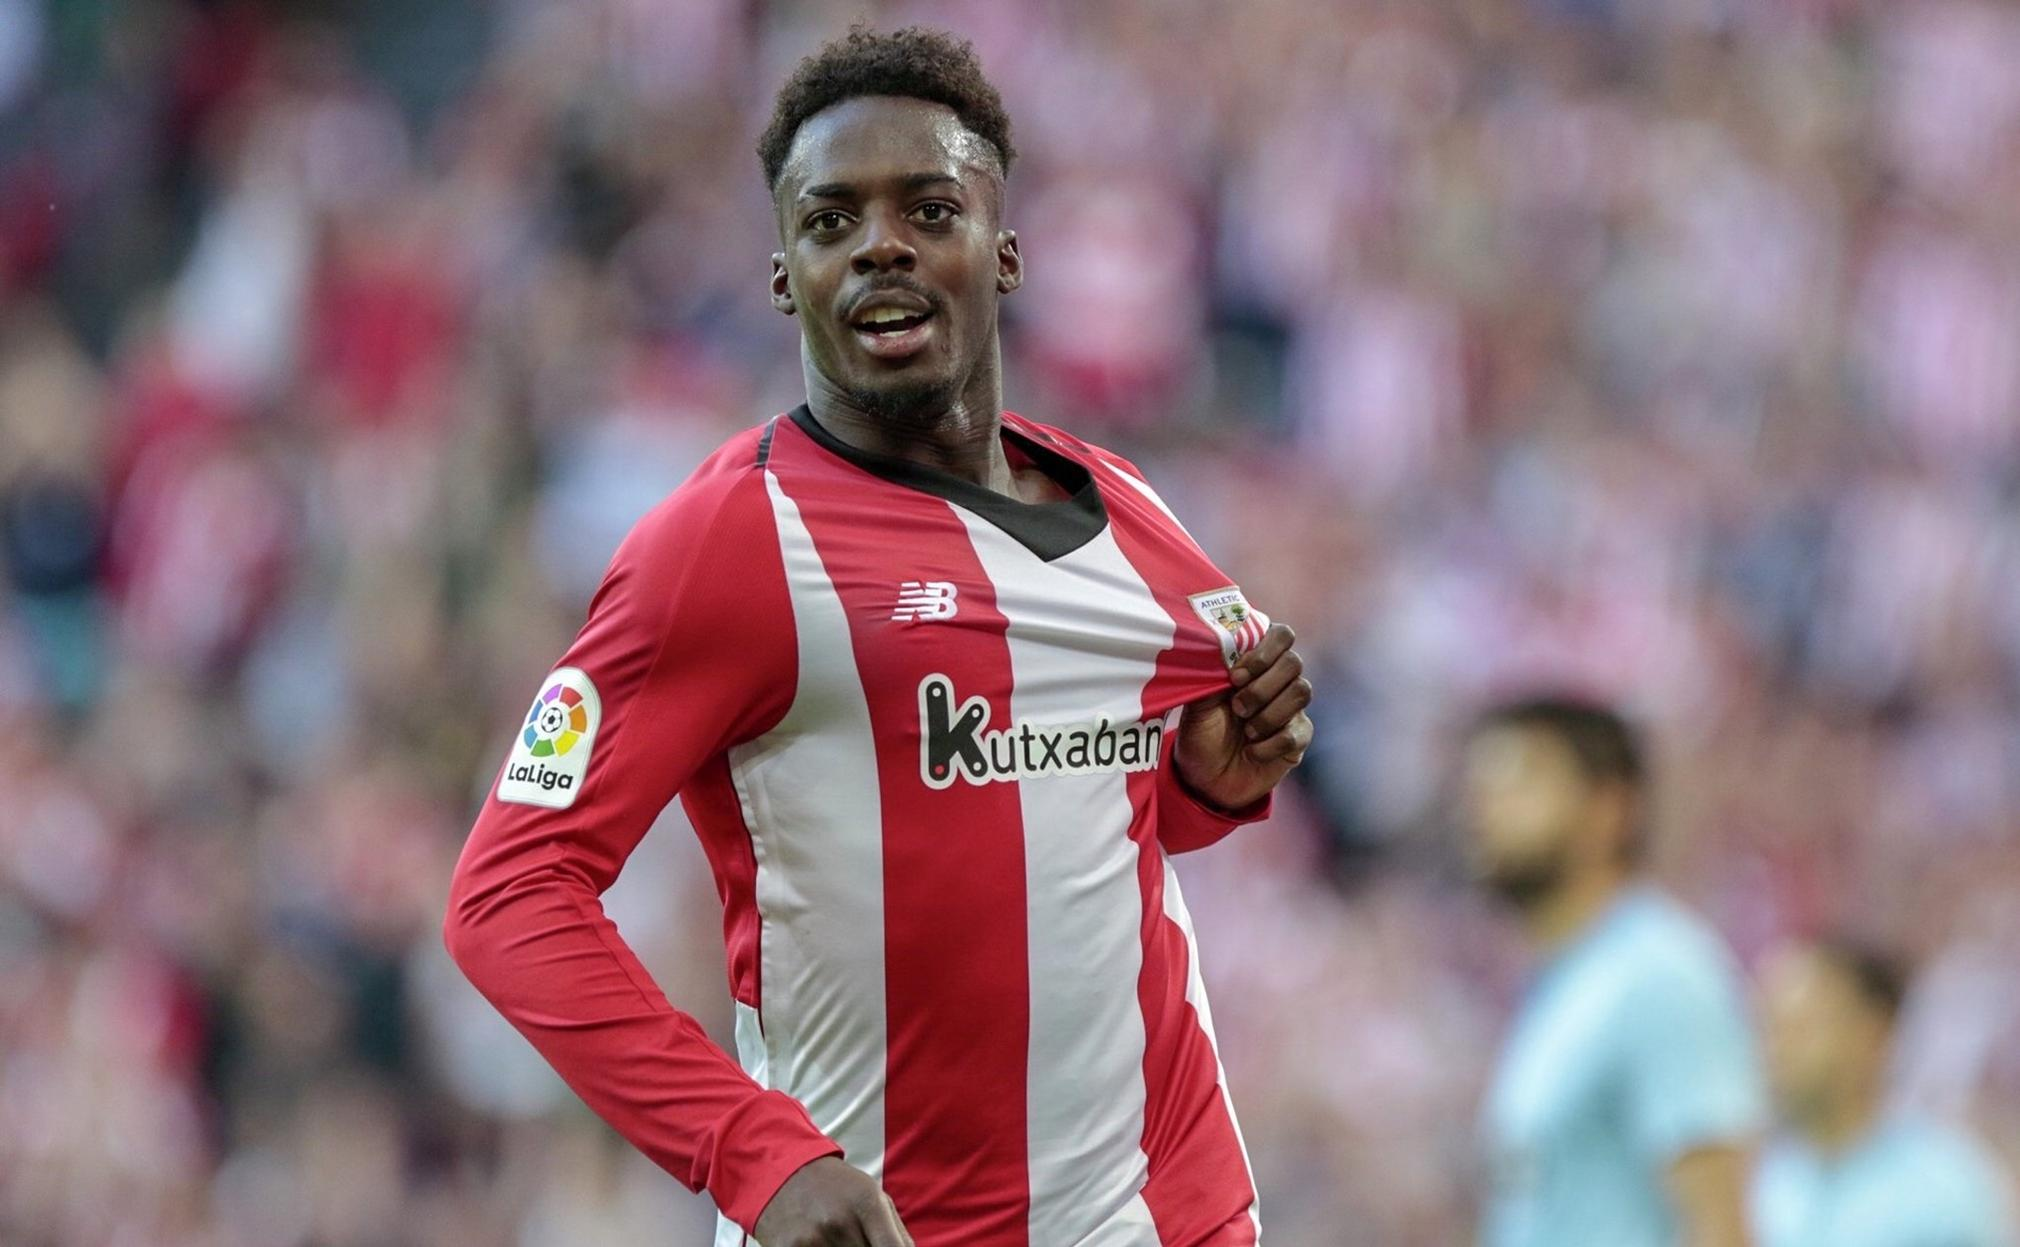 Iñaki Williams, delantero del Athletic de Bilbao, amplia su contrato hasta el 2028